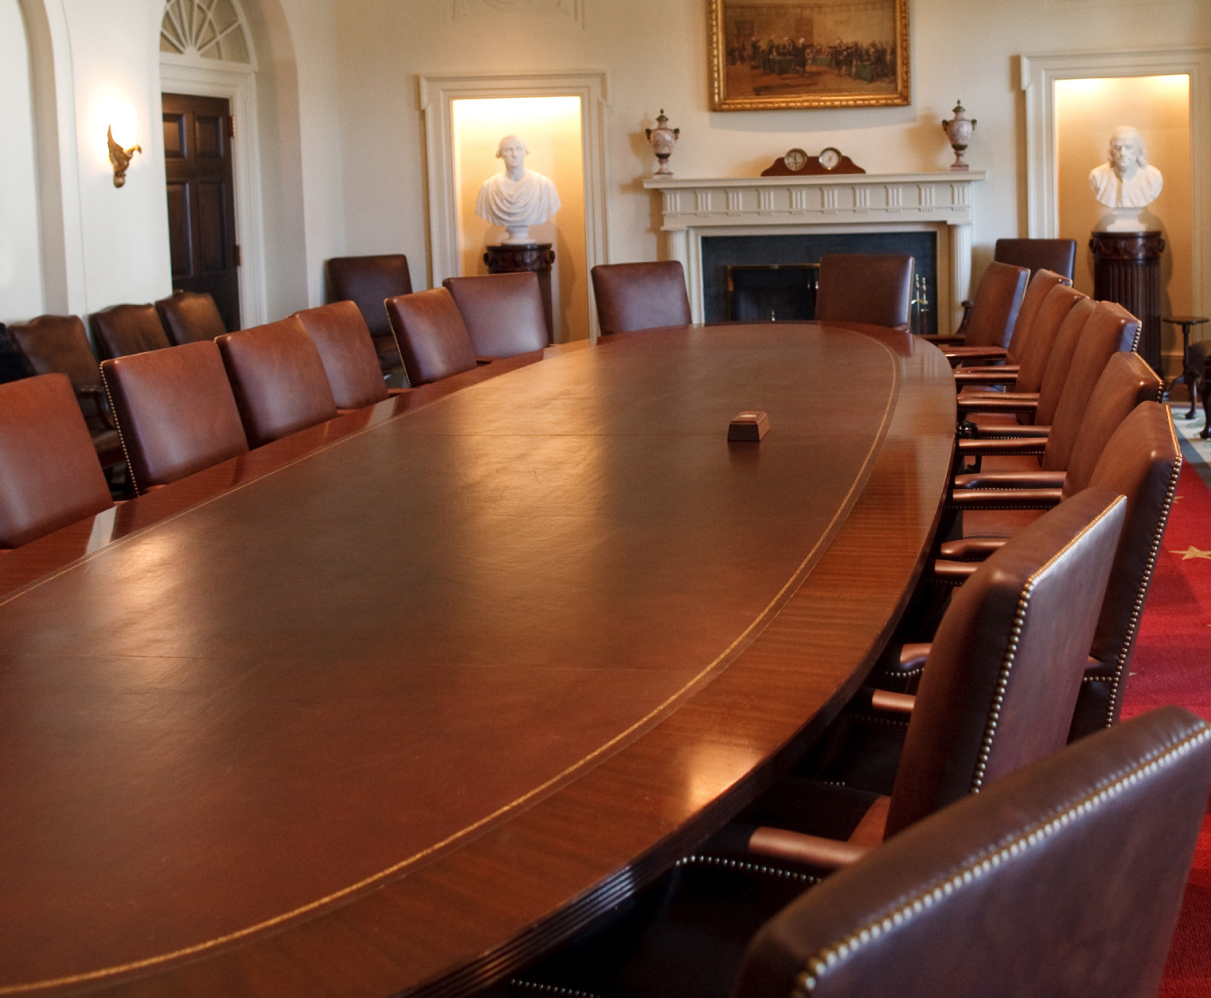 Image is of the cabinet's conference room.